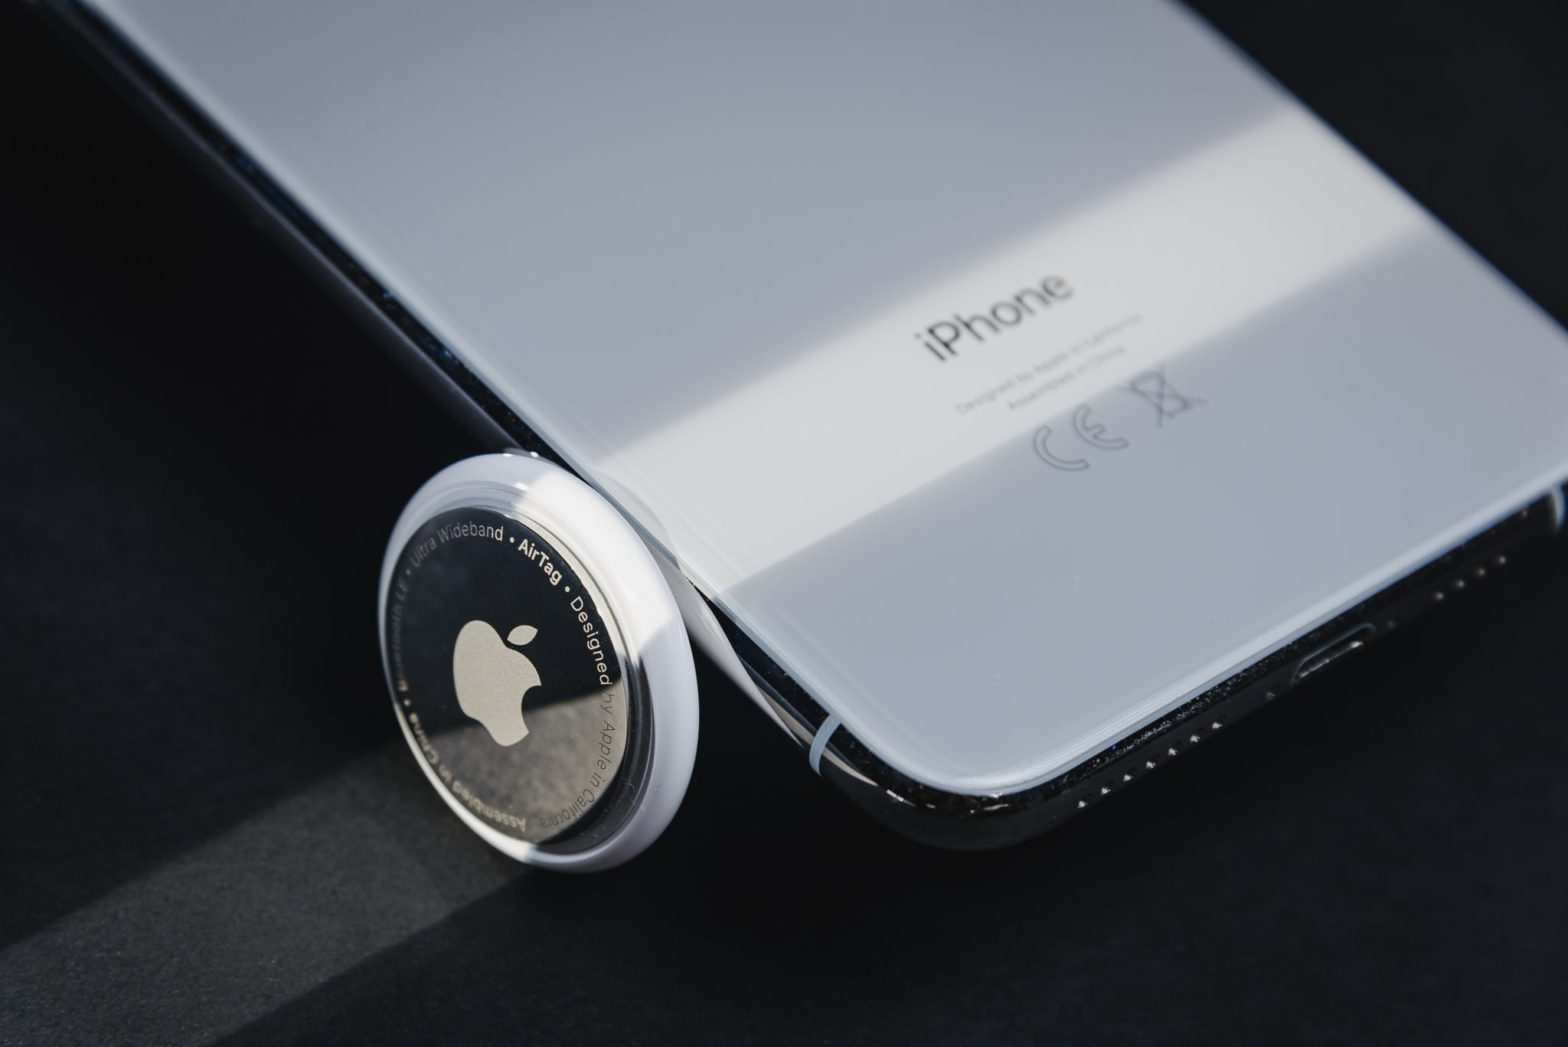 AirTag item tracker by Apple leaving agains an iPhone